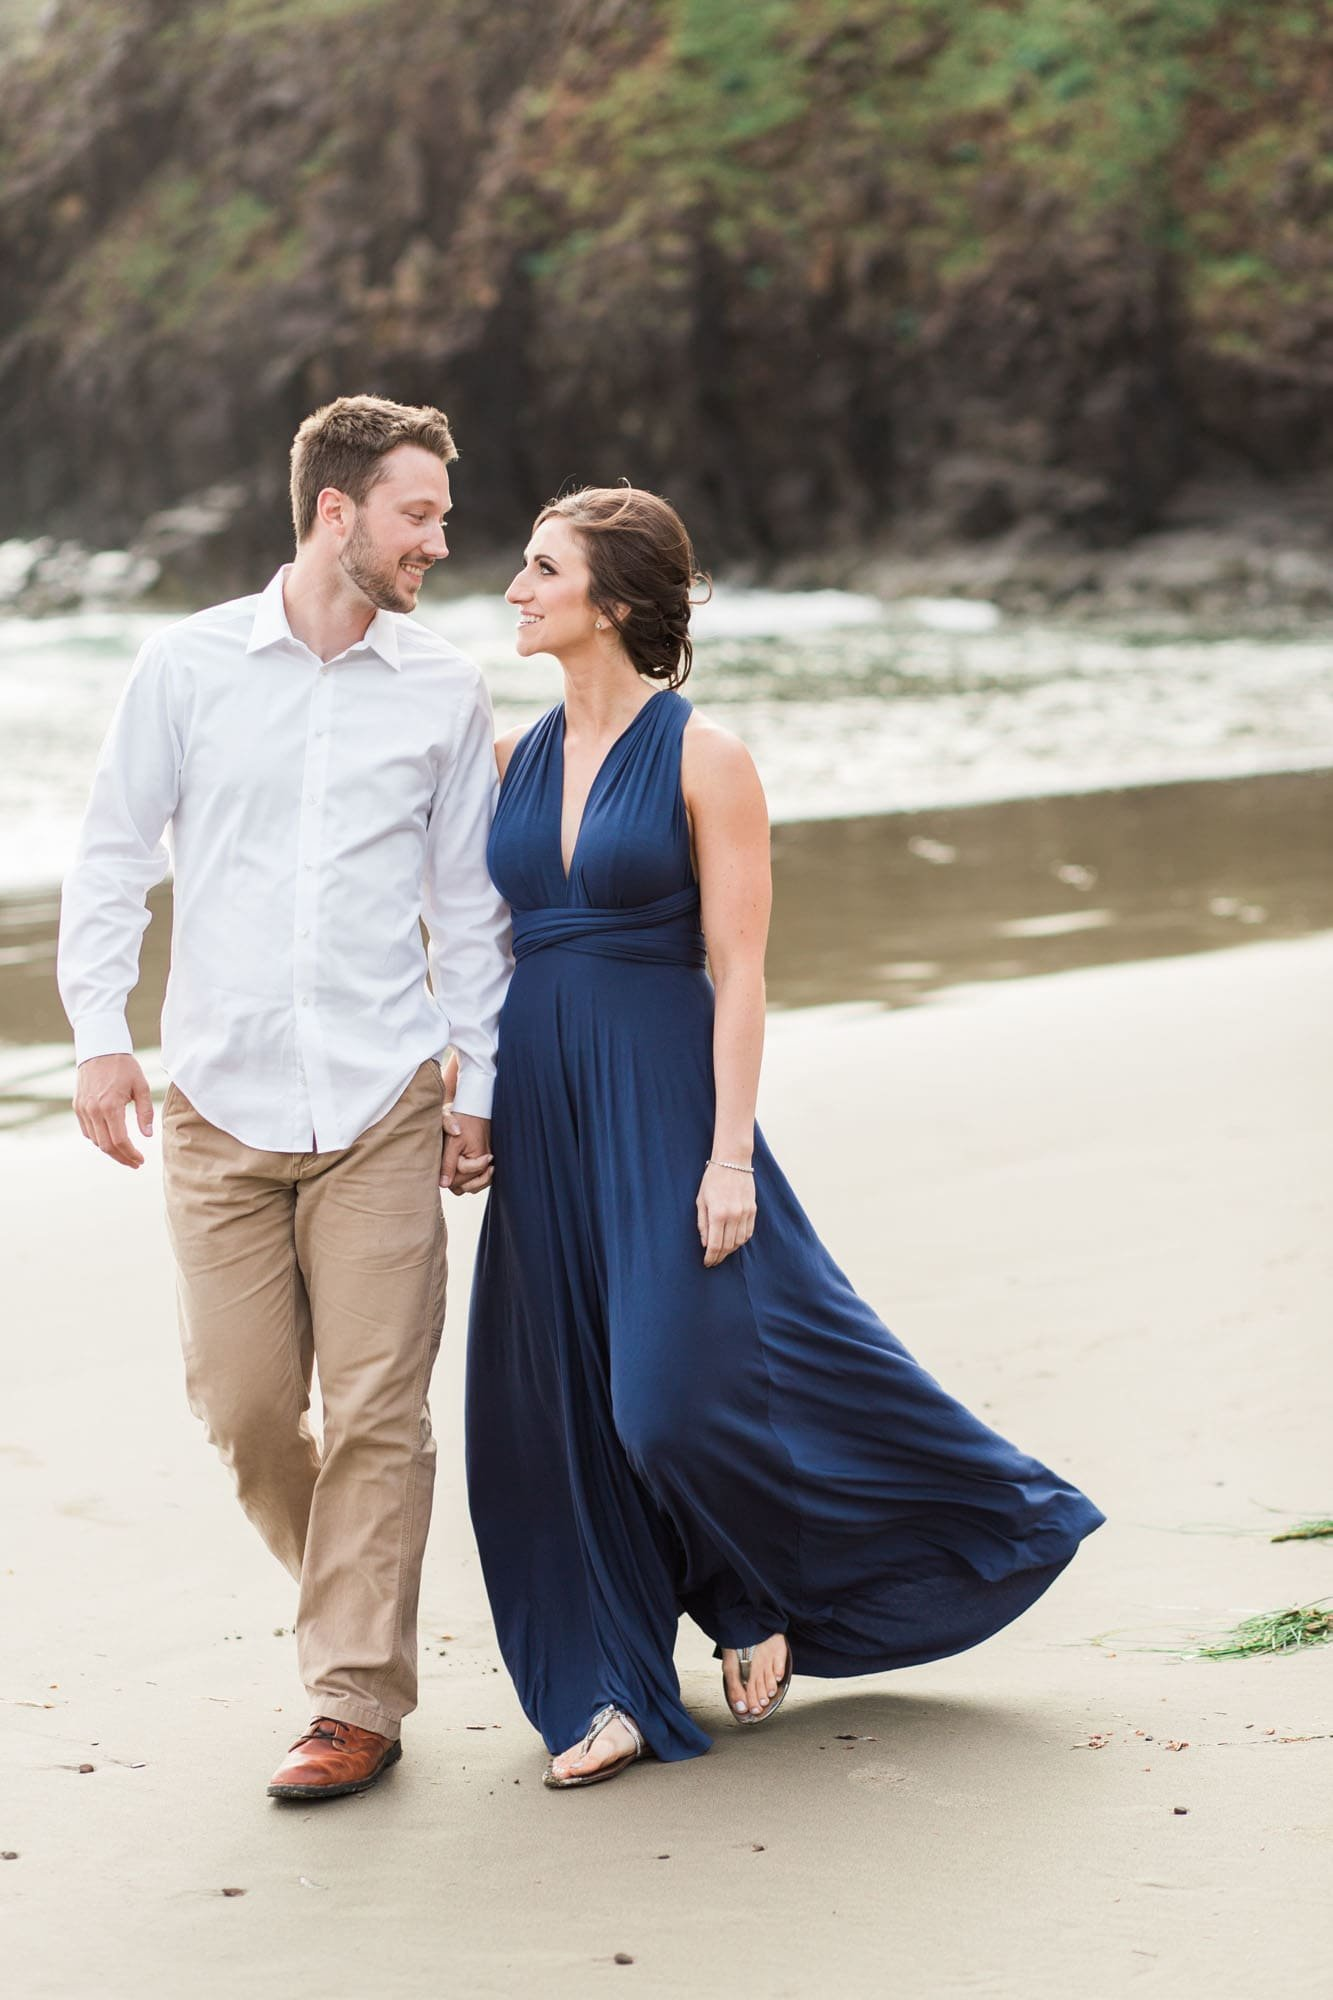 Wind blows dress during engagement session at Ecola State Park